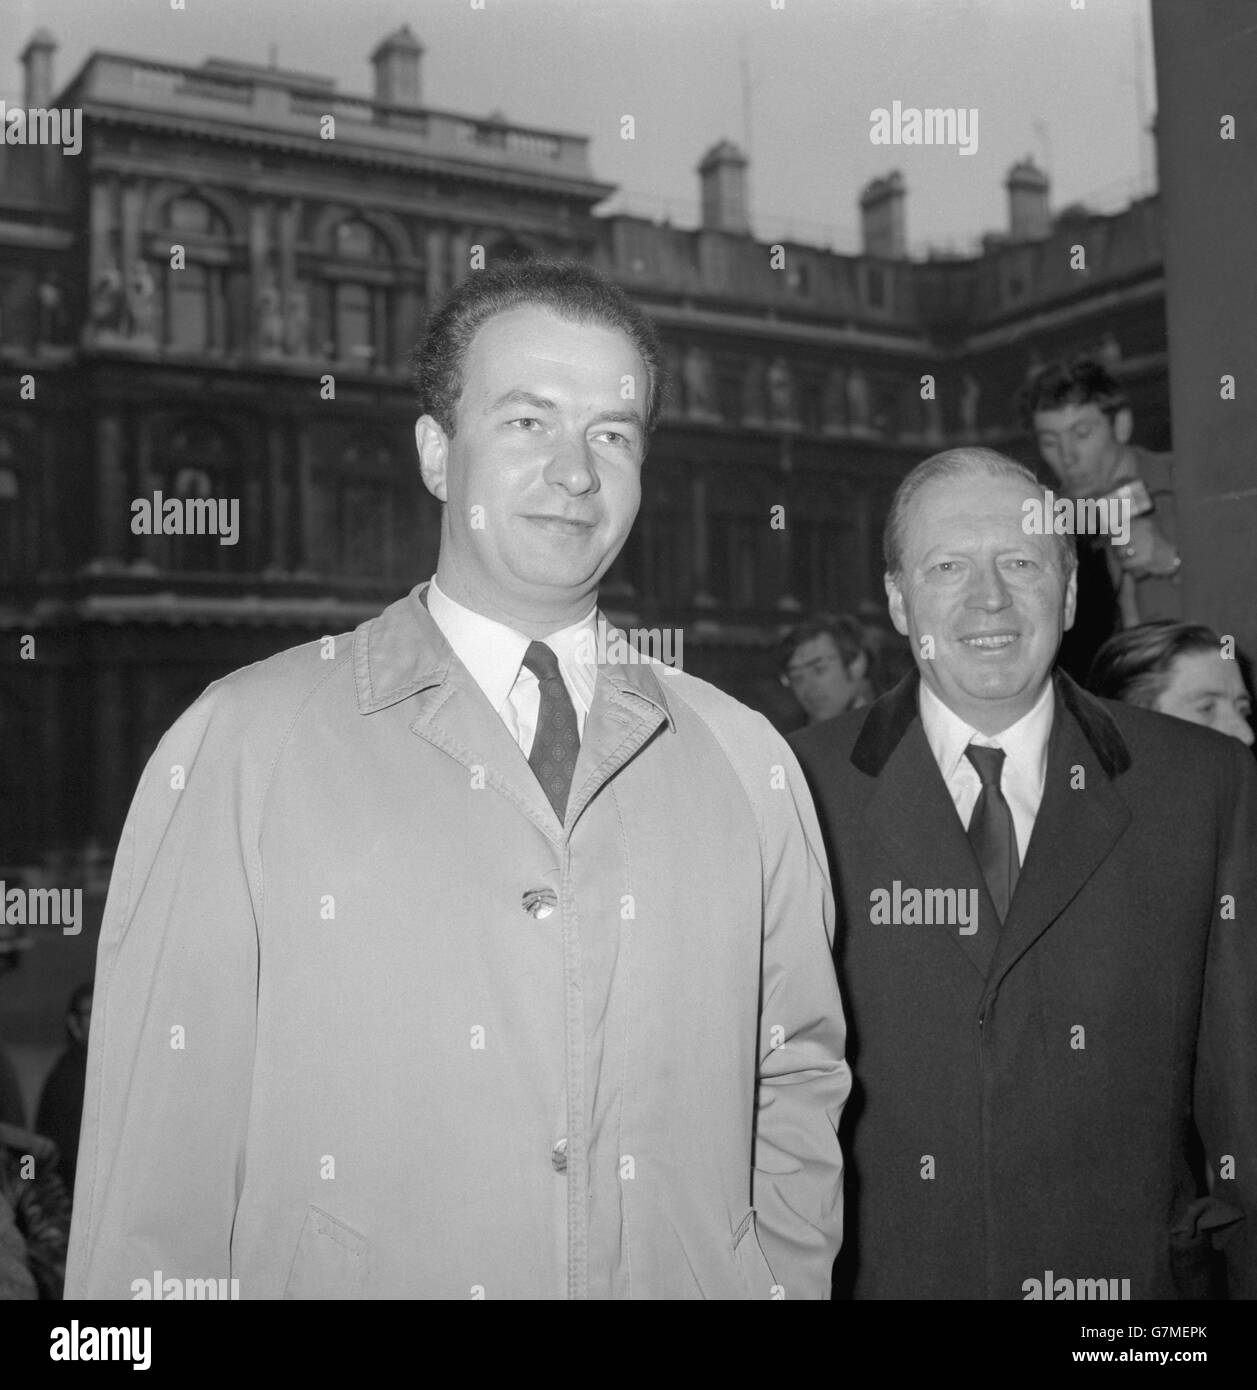 Politics - Campaign To Release Rudolf Hess - Airey Neave and Wolf Hess - Foreign Office, London Stock Photo